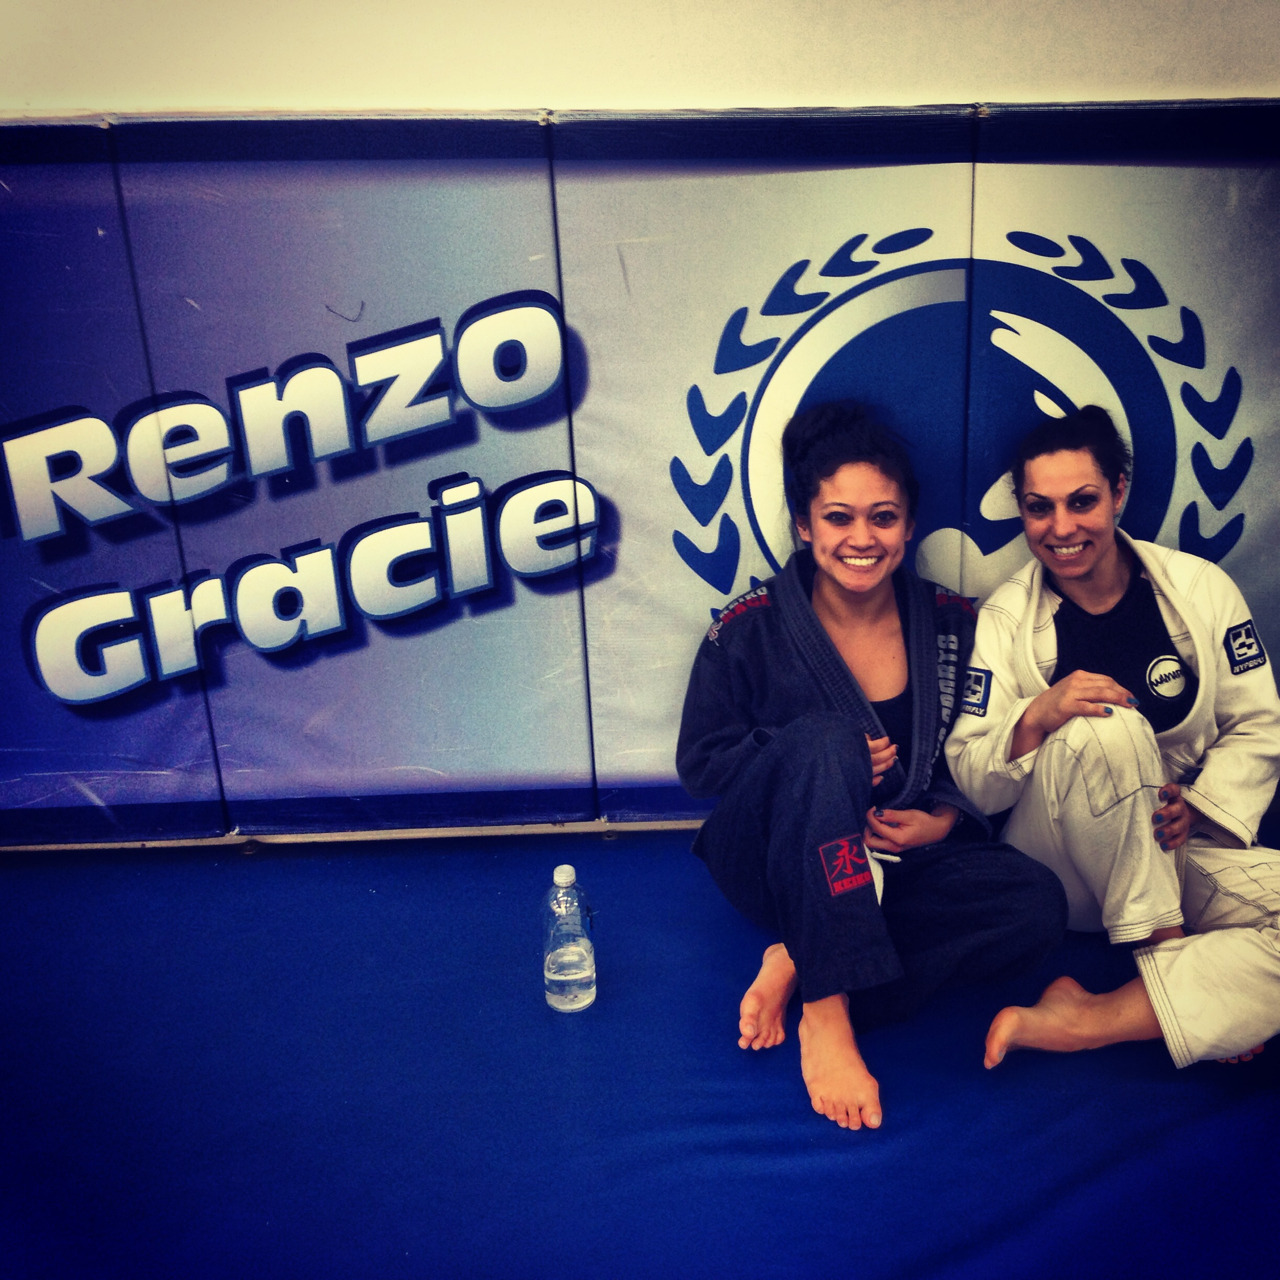 ohfaye:  A visit to the Renzo Gracie gym in the city. We took the 7pm women's class with Max. Learned some good technique. Time to drill over and over and over and over until my muscles know that sweep and that submission by heart!! I missed out Brooklyn heads though. Back to home base tomorrow :)